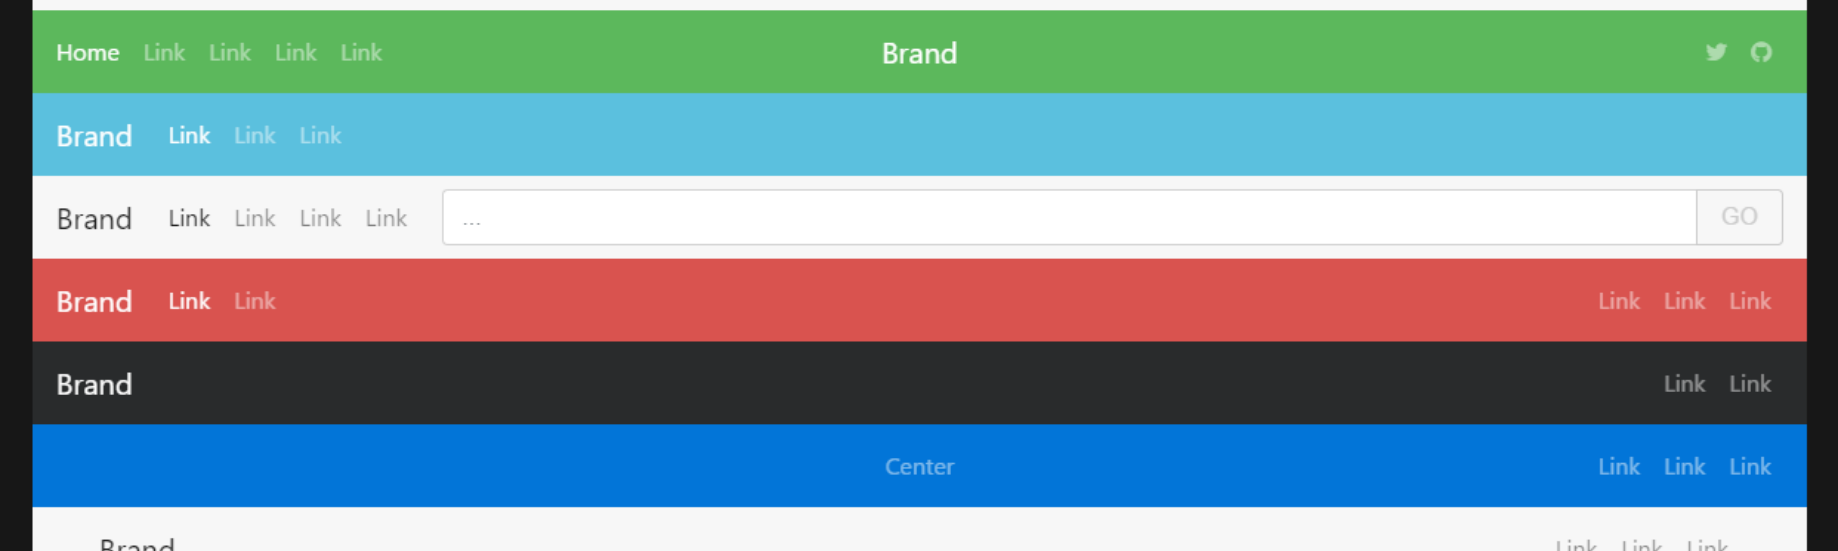 Bootstrap 4 Navbar Examples Customize The Navbar Color Height Or By Carol Skelly Wdstack Medium